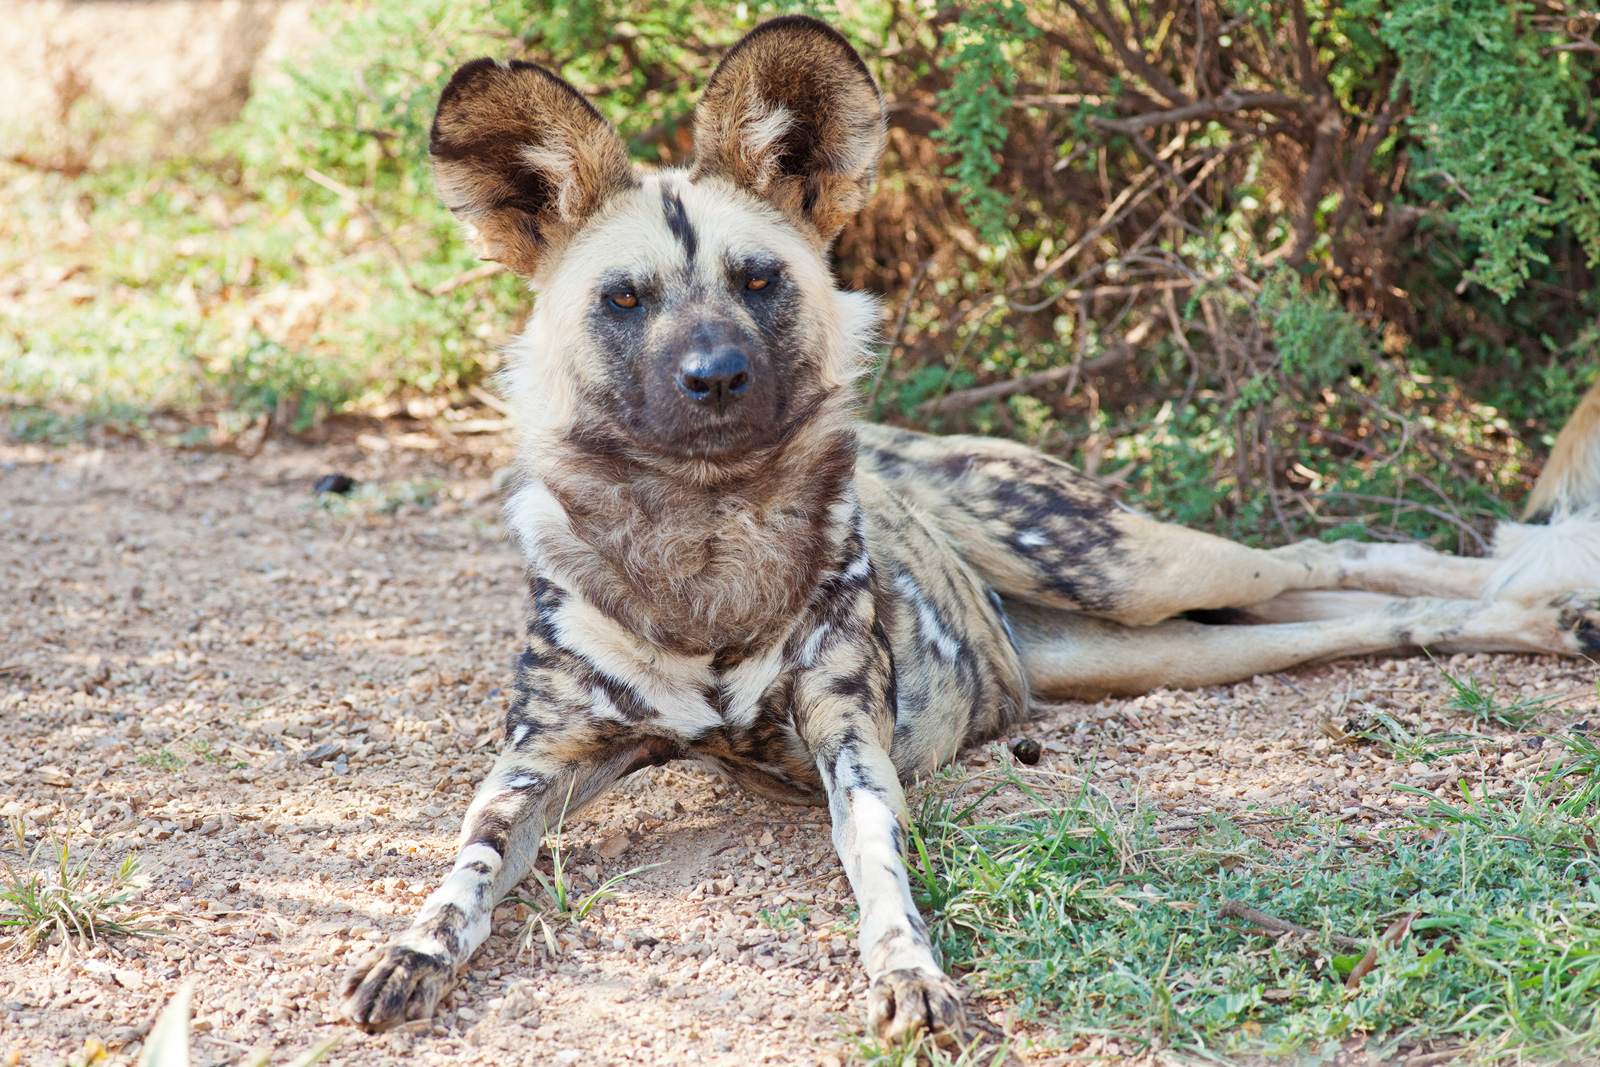 File:African wild dog Feb09 02.jpg - Wikimedia Commons